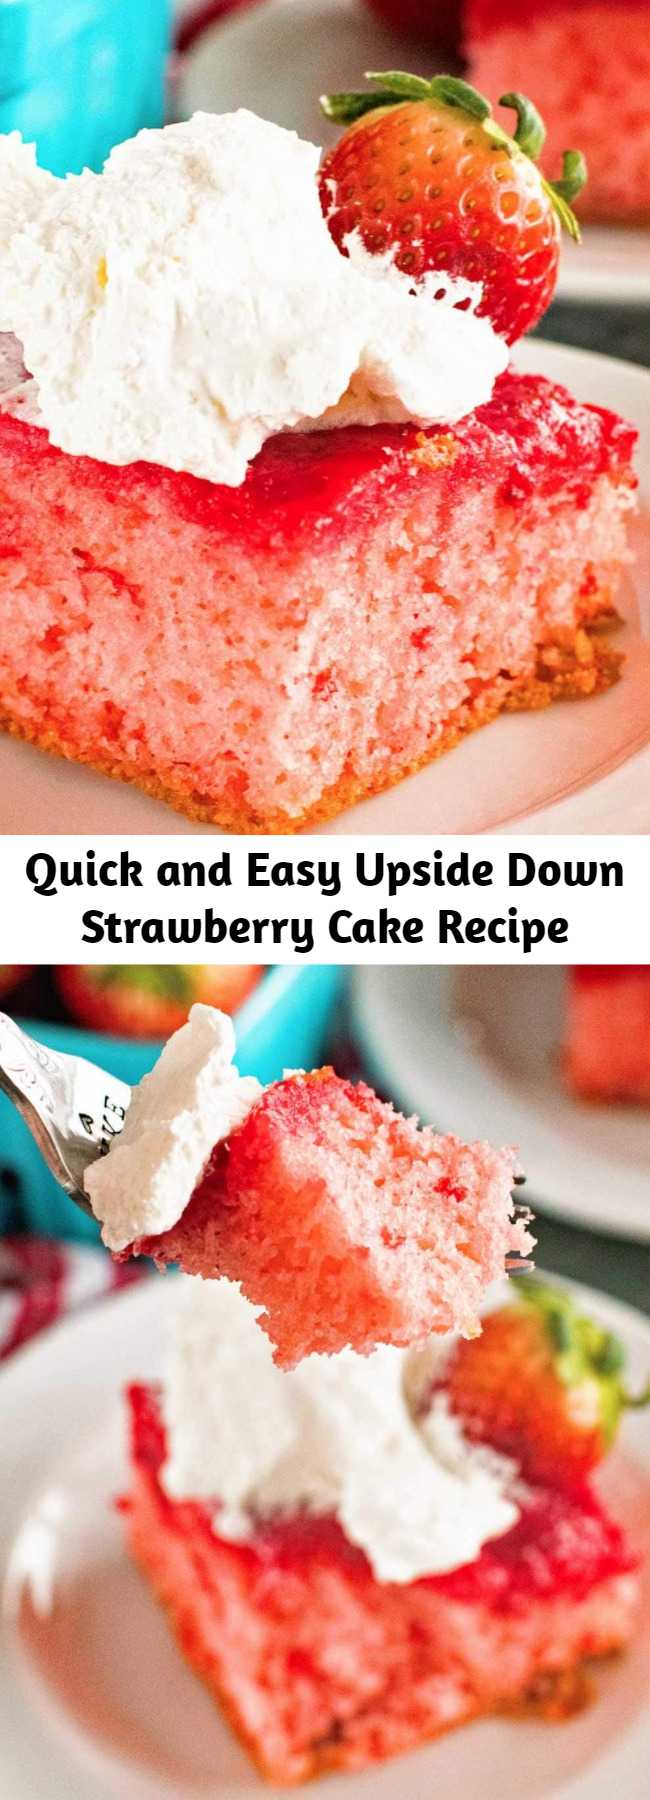 Quick and Easy Upside Down Strawberry Cake Recipe - Need a quick and easy dessert that's bursting with flavor? This easy Strawberry Upside Down Cake only requires a boxed strawberry cake mix plus a few more ingredients. The result is a light, fluffy cake that's bursting with strawberry flavor that's impressive, yet easy. It's so easy anyone can make it!